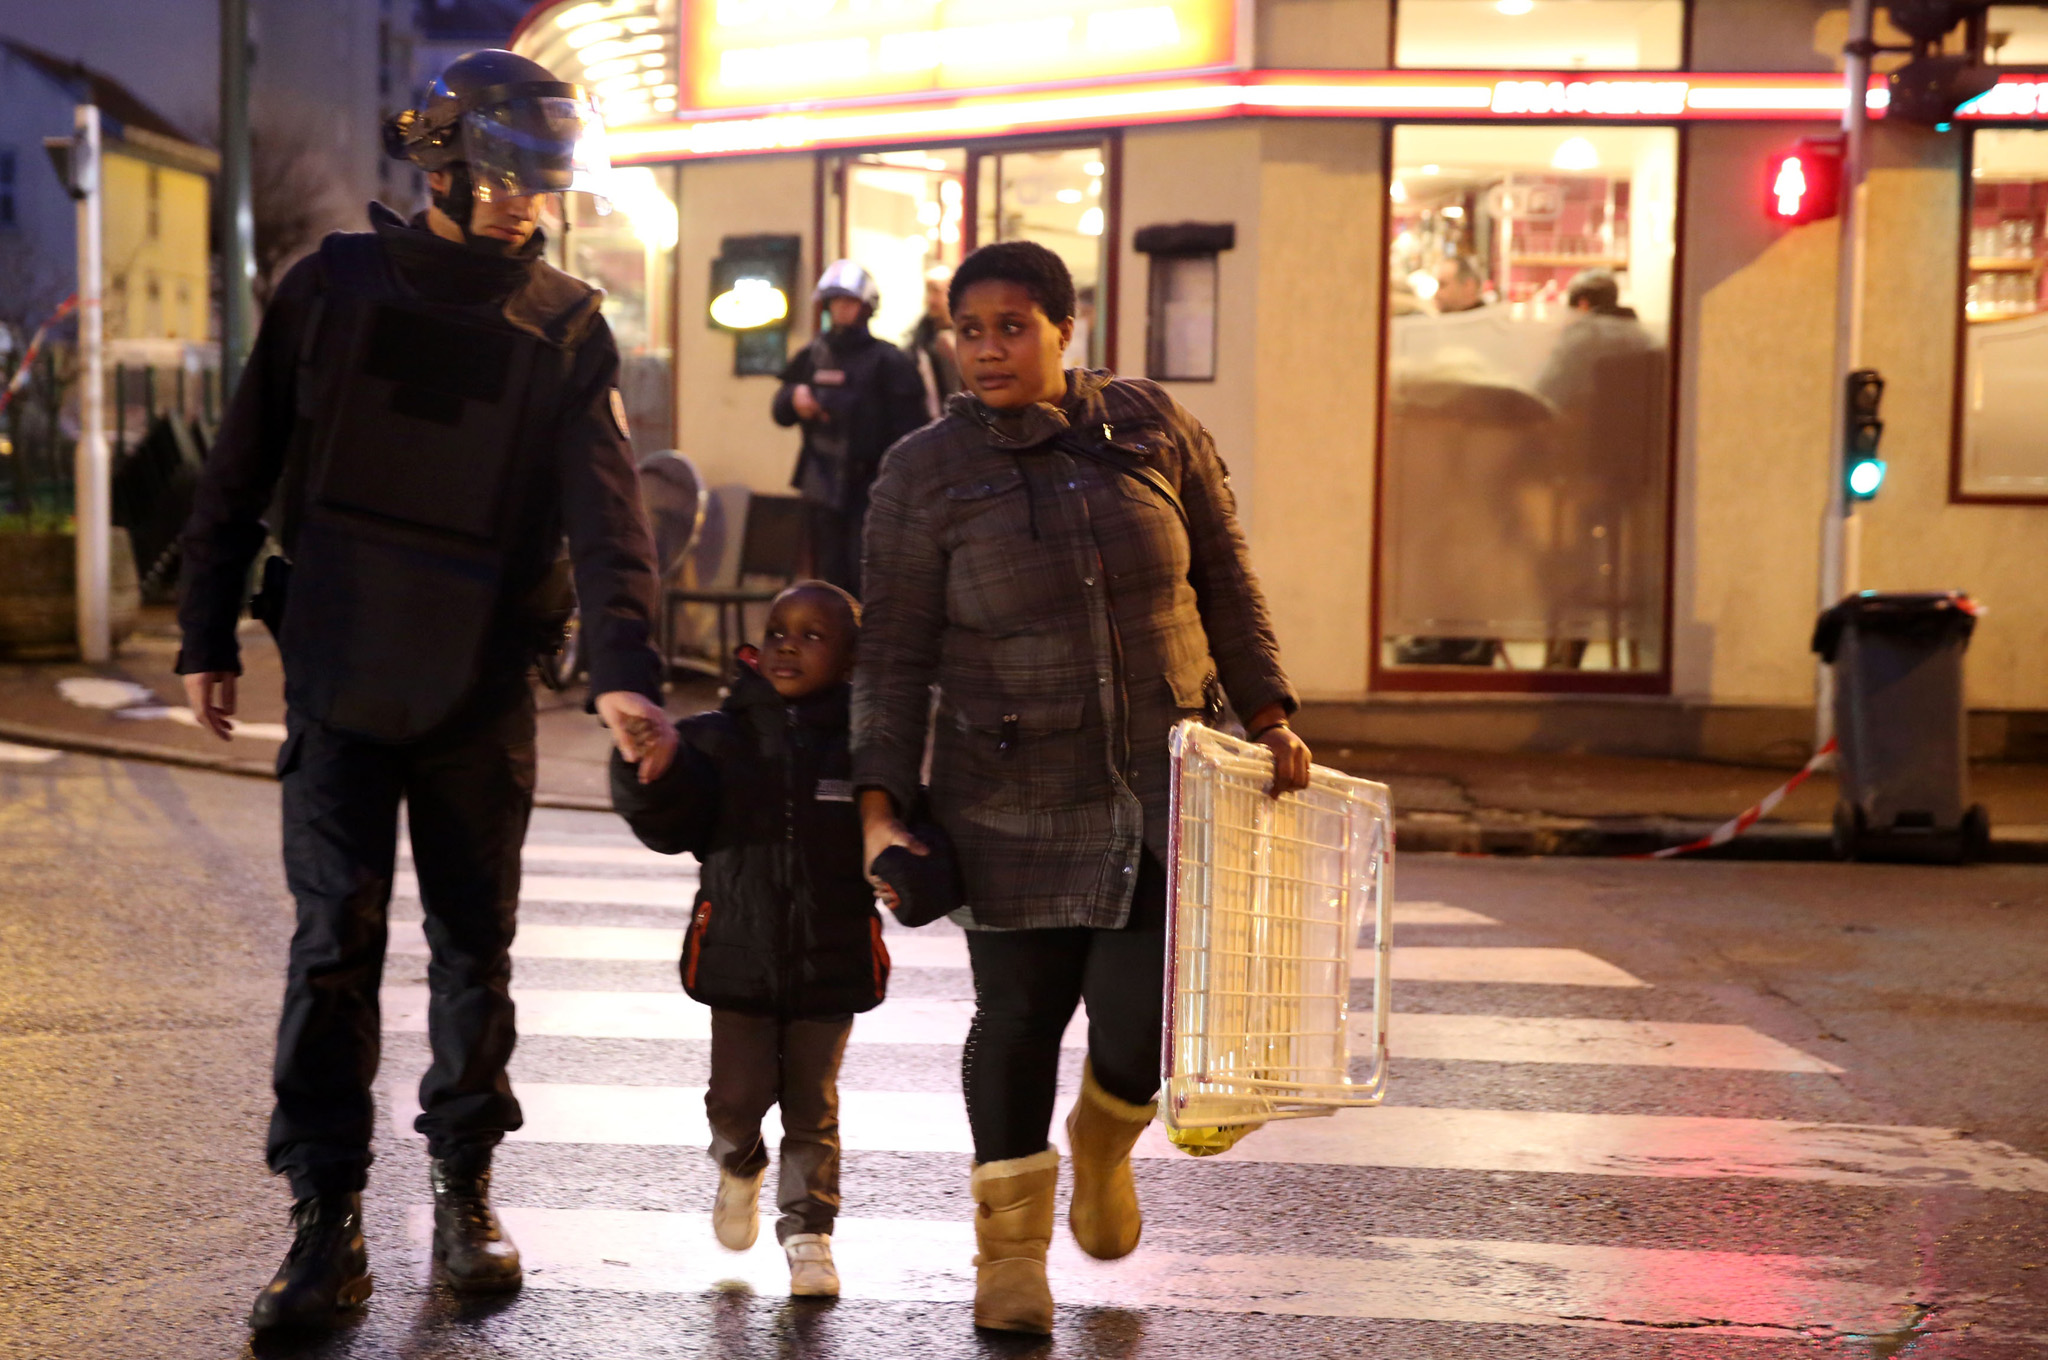 Emergency Services Attend Further Hostage Situation In Kosher Deli...PARIS, FRANCE - JANUARY 09:  Police escort a child and woman as they mobilize at the hostage situation at Port de Vincennes on January 9, 2015 in Paris, France. According to reports at least five people have been taken hostage in a kosher deli in the Port de Vincennes area of Paris. A huge manhunt for the two suspected gunmen in Wednesday's deadly attack on Charlie Hebdo magazine has entered its third day.  (Photo by Dan Kitwood/Getty Images)